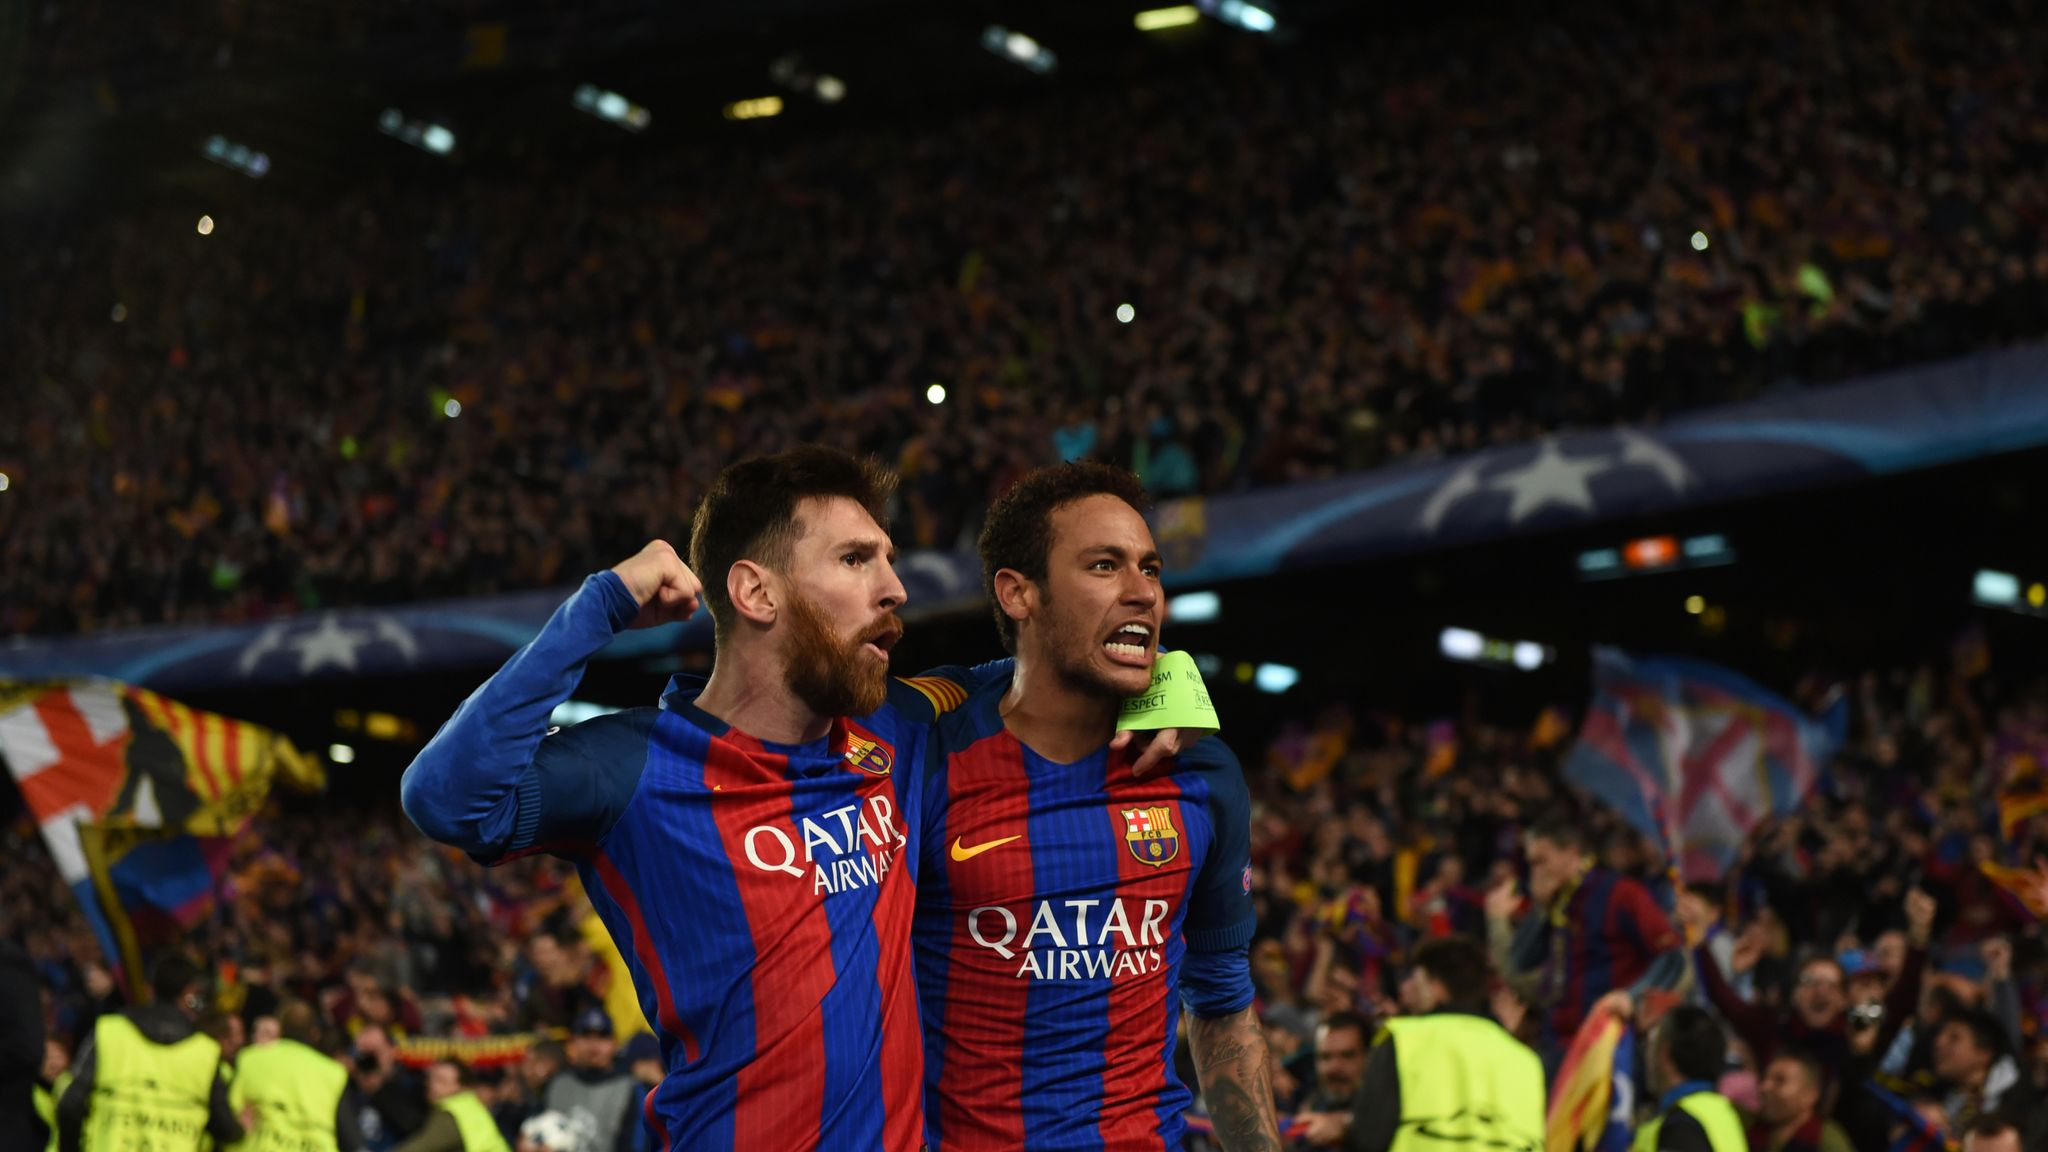 """Neymar will play with Messi, but at Barcelona"""" - says star's former agent -  Football Espana"""